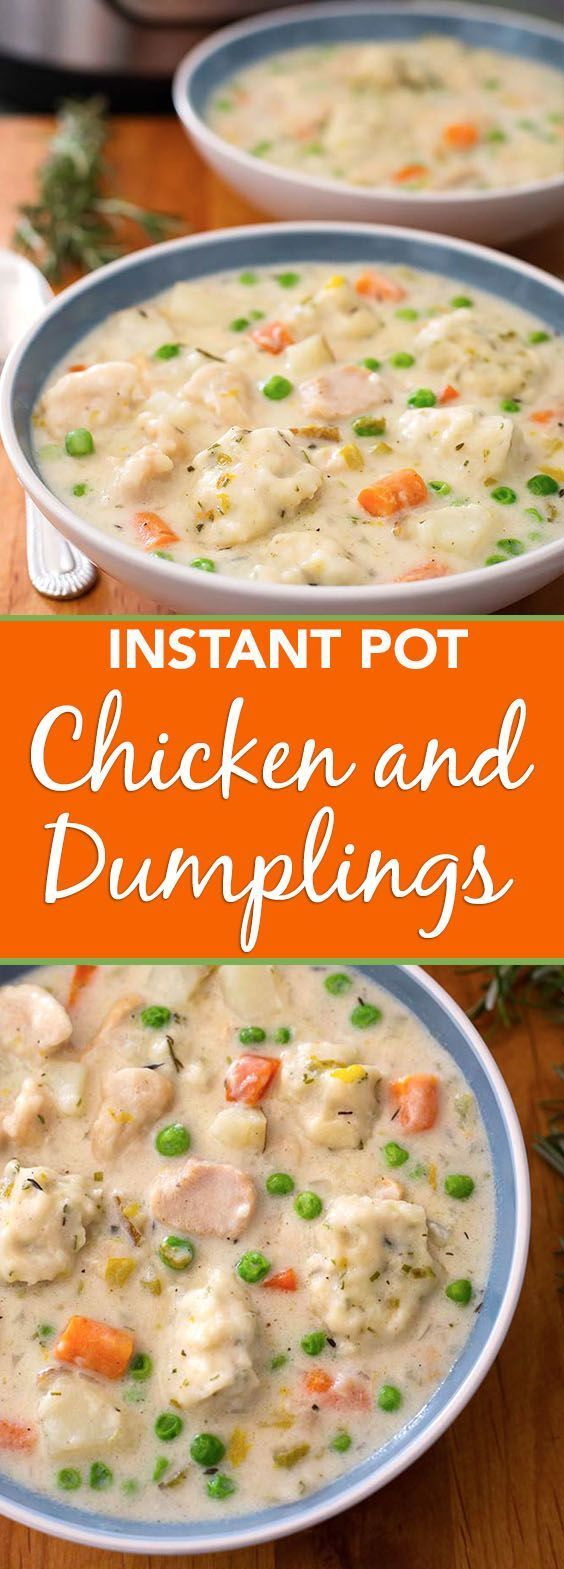 instant pot chicken and dumplings are a delicious comfort